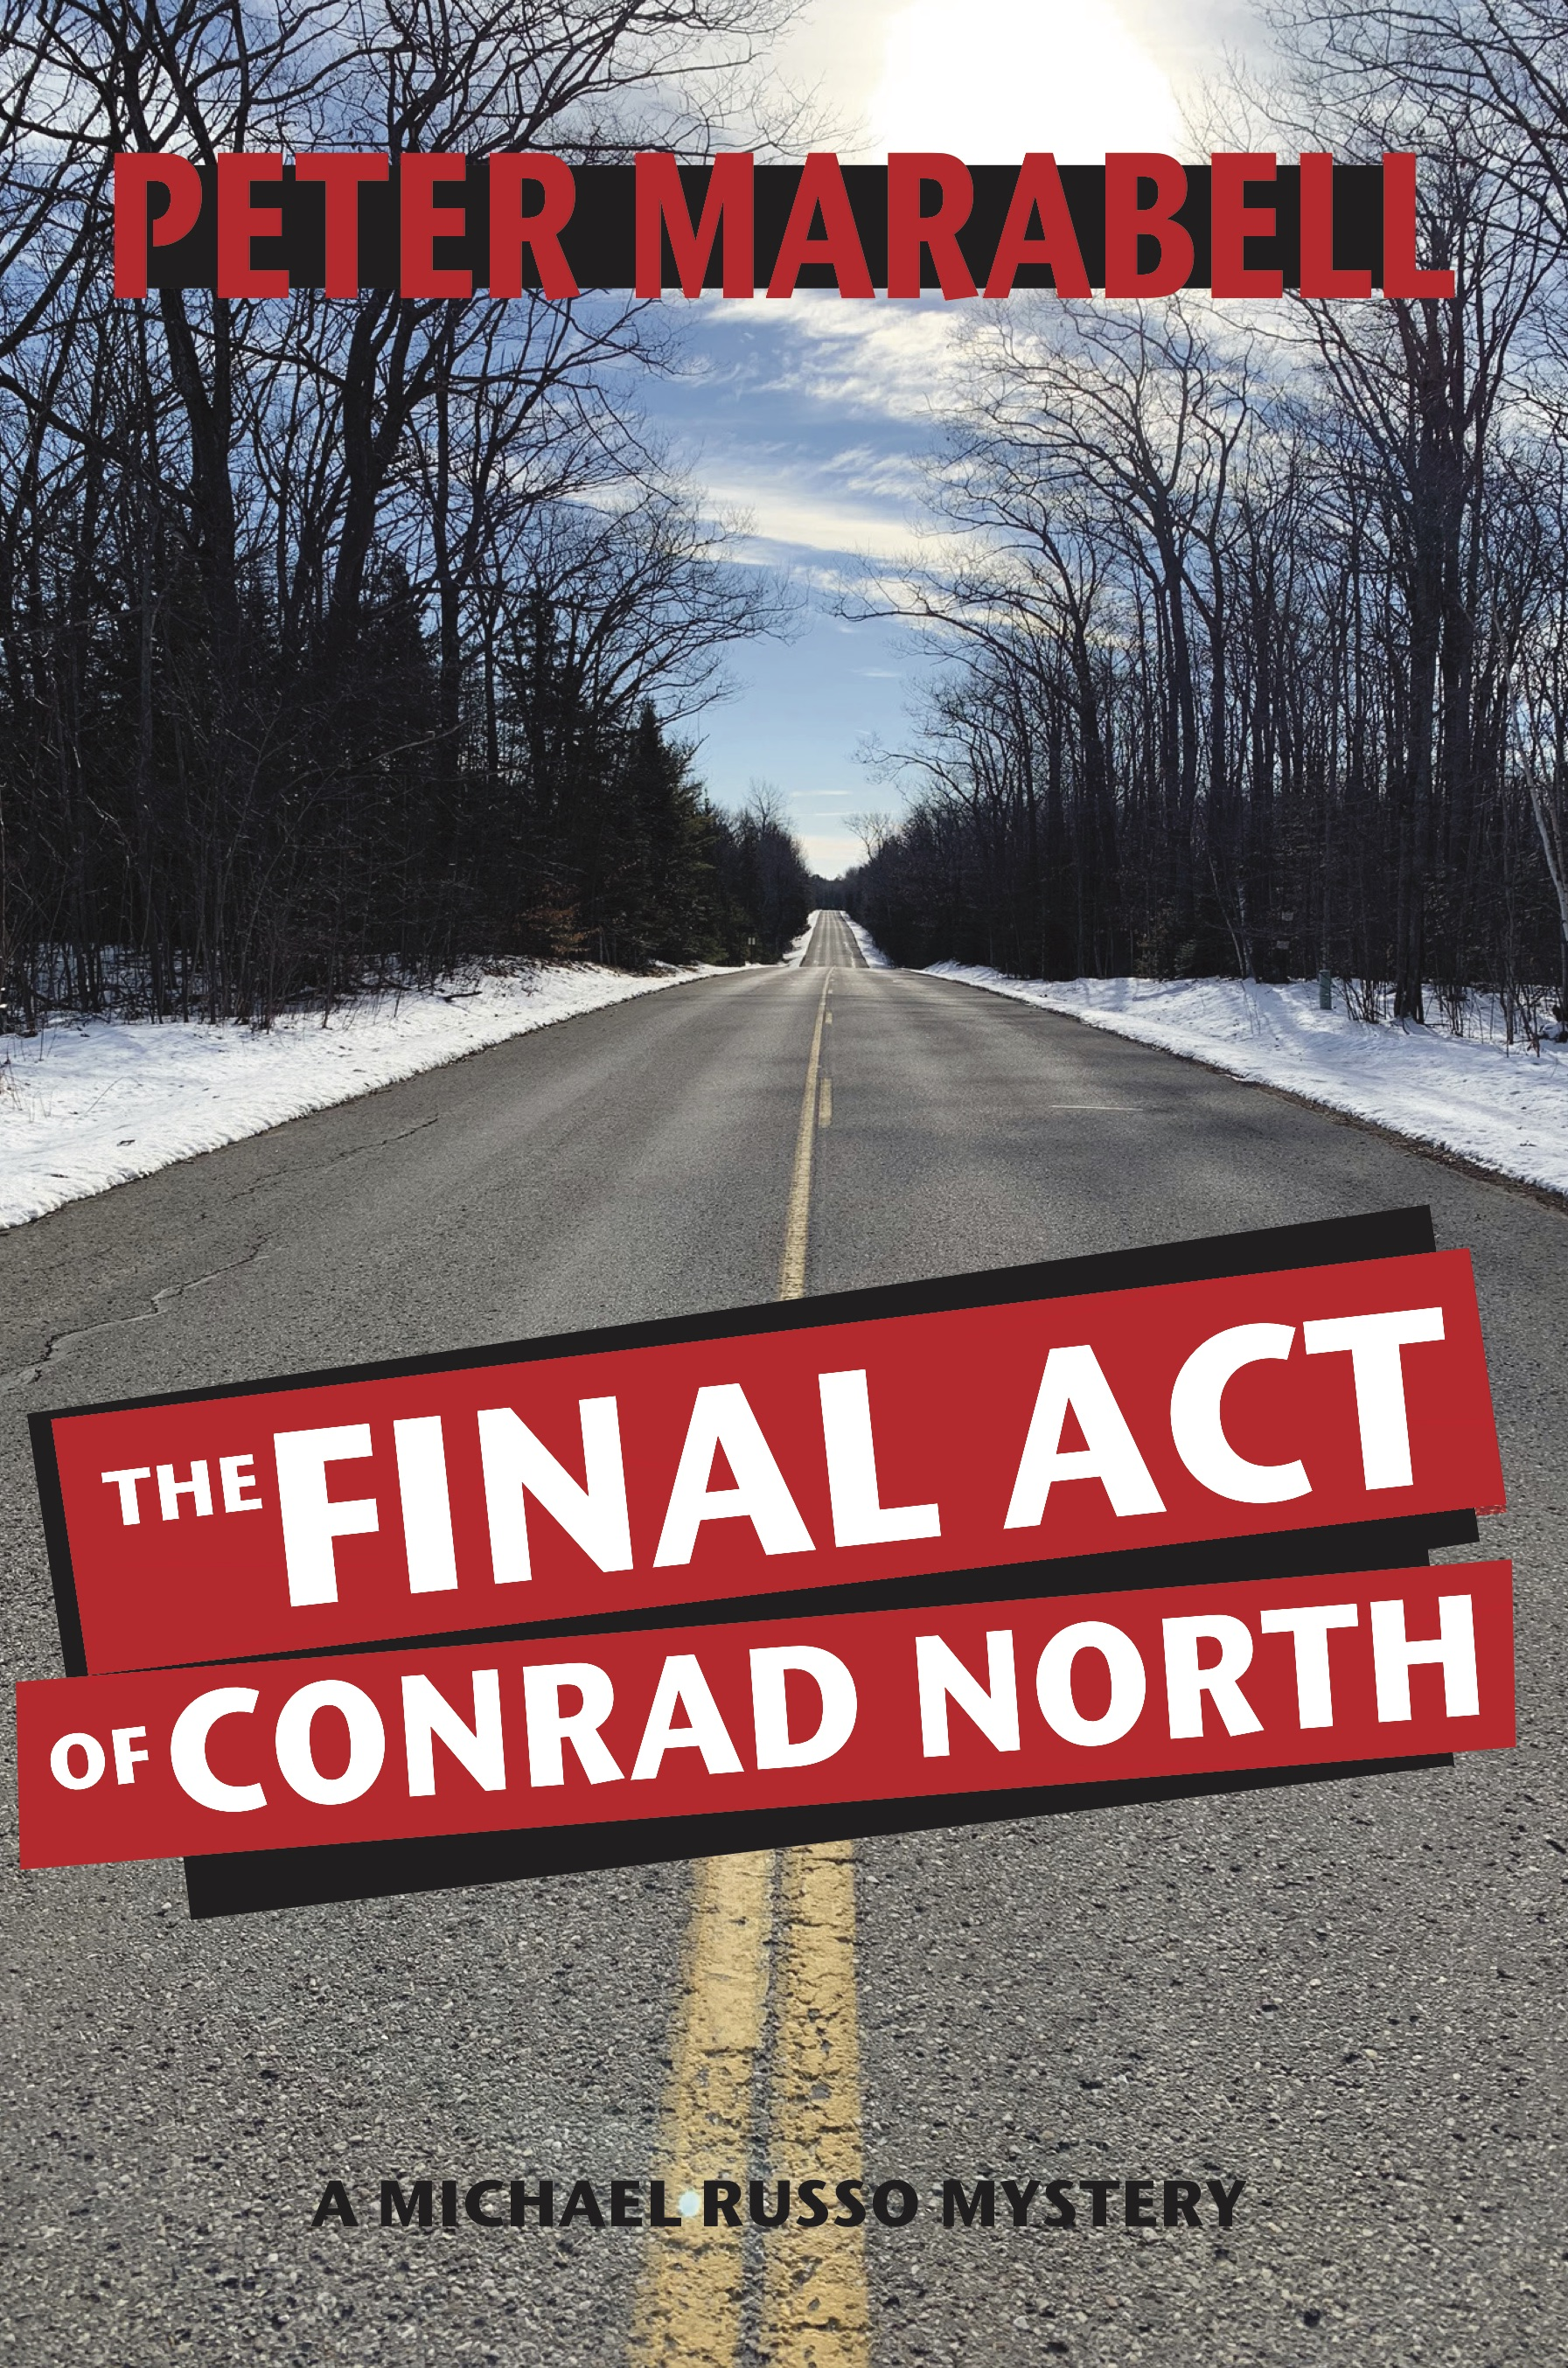 """- """"The case is cold, the leads are dry, the cops care more about watching football and the chief suspect has disappeared.""""""""Conrad North is hiding something, and he's scared Russo has found him out.""""More about the authorBuy the book on Amazon"""